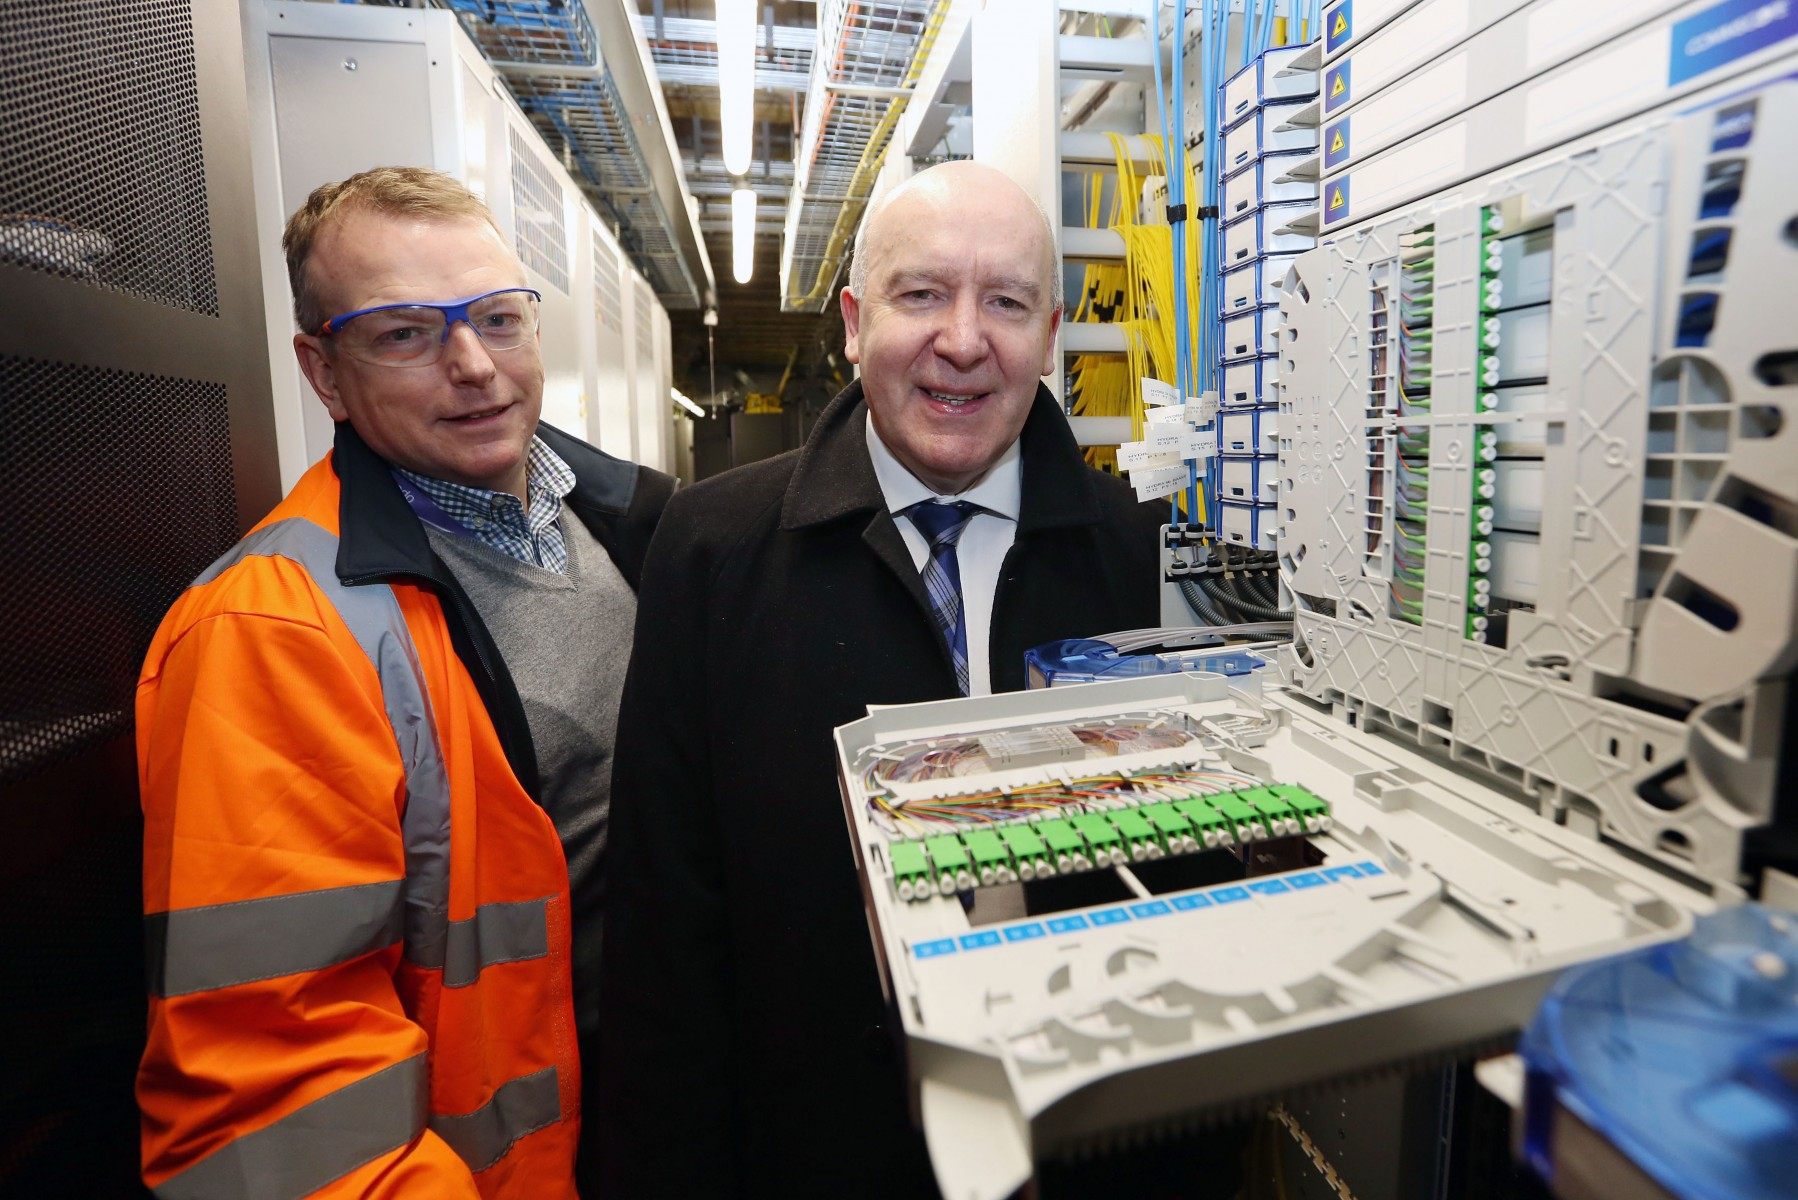 Willie Coffey MSP visits Openreach Fibre City build in Kilmarnock